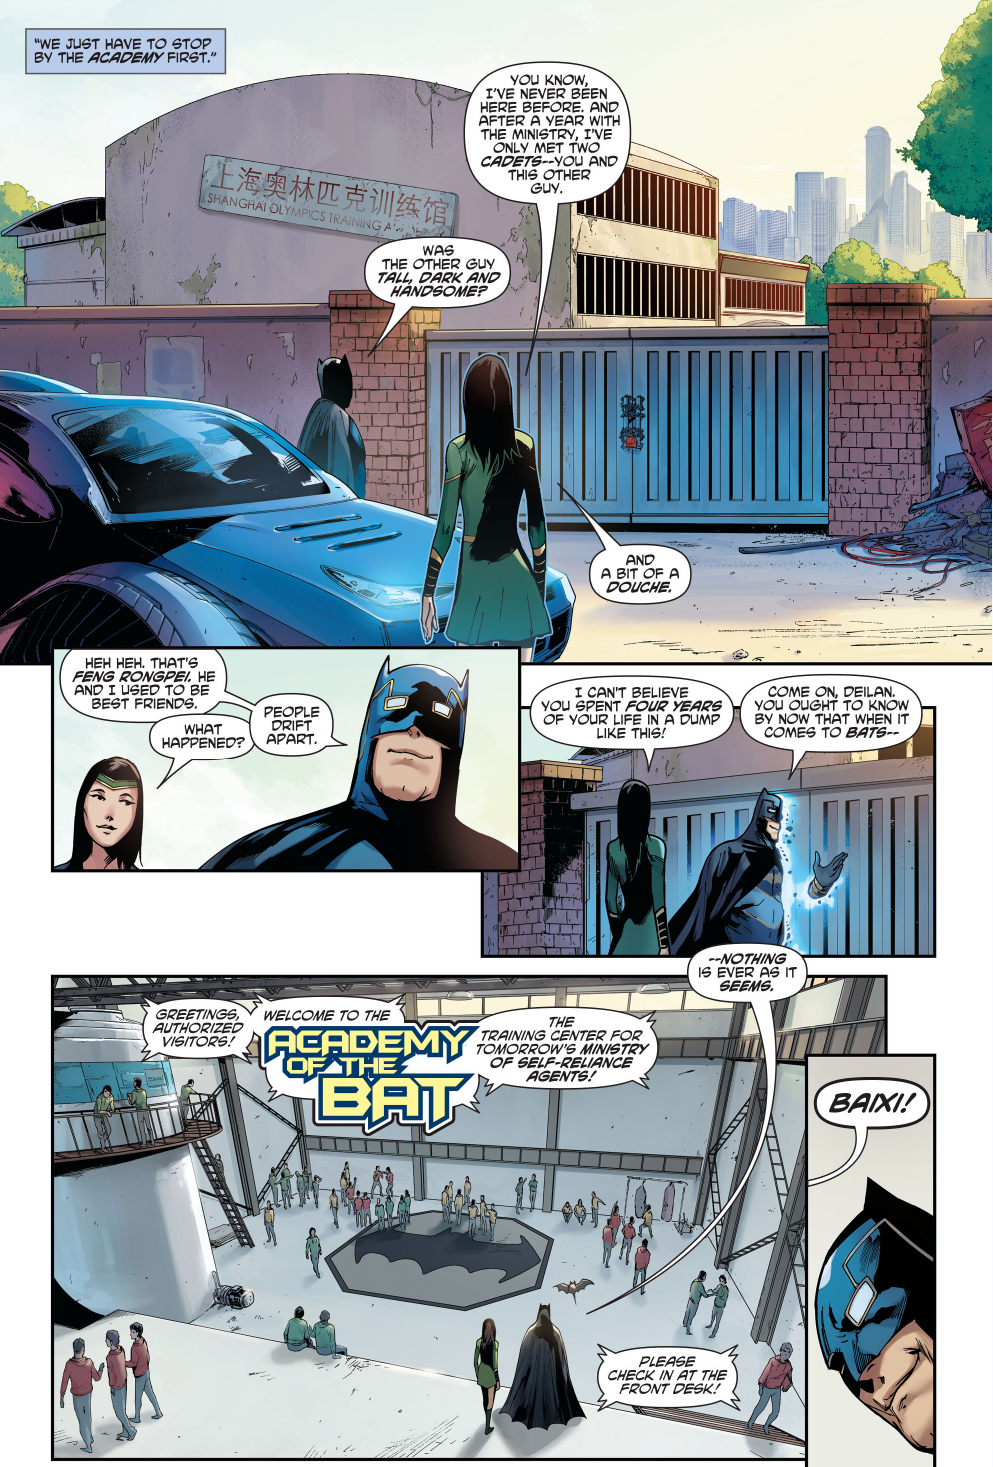 the-academy-of-the-bat